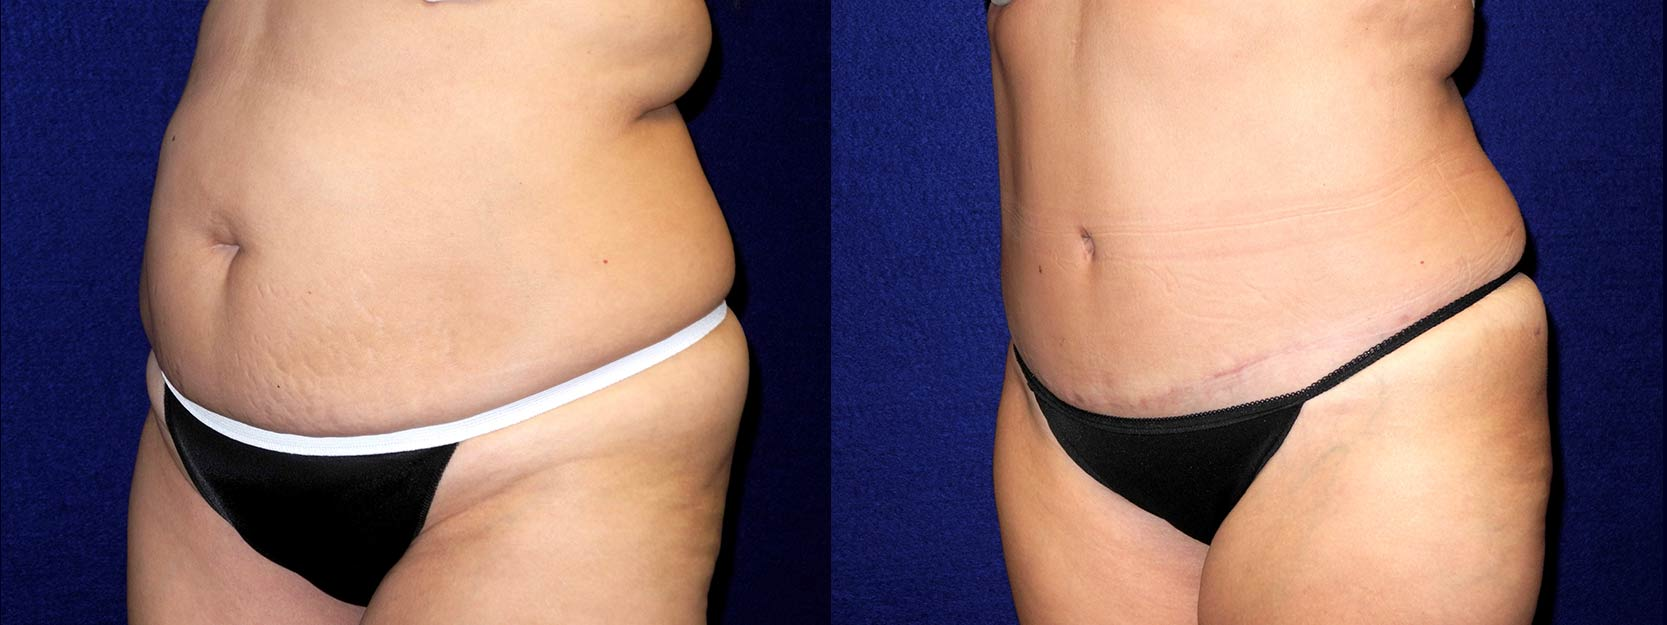 Left 3/4 View - Tummy Tuck and Liposuction